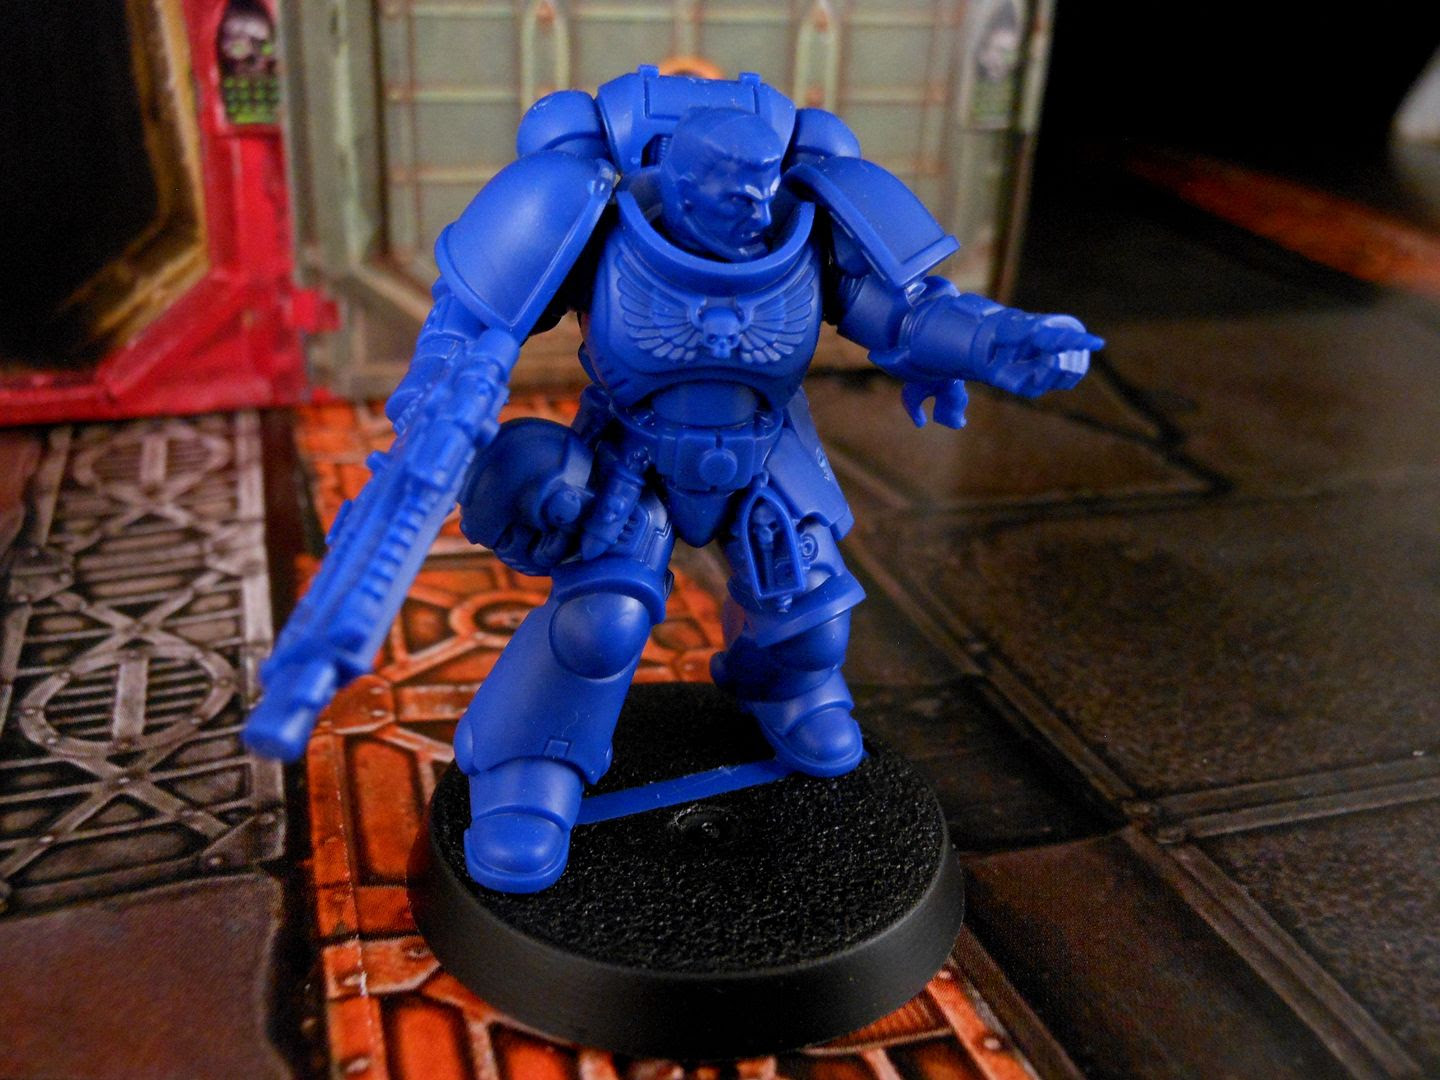 An Intercessor Space Marine Sergeant from Warhammer 40,000: First Strike.